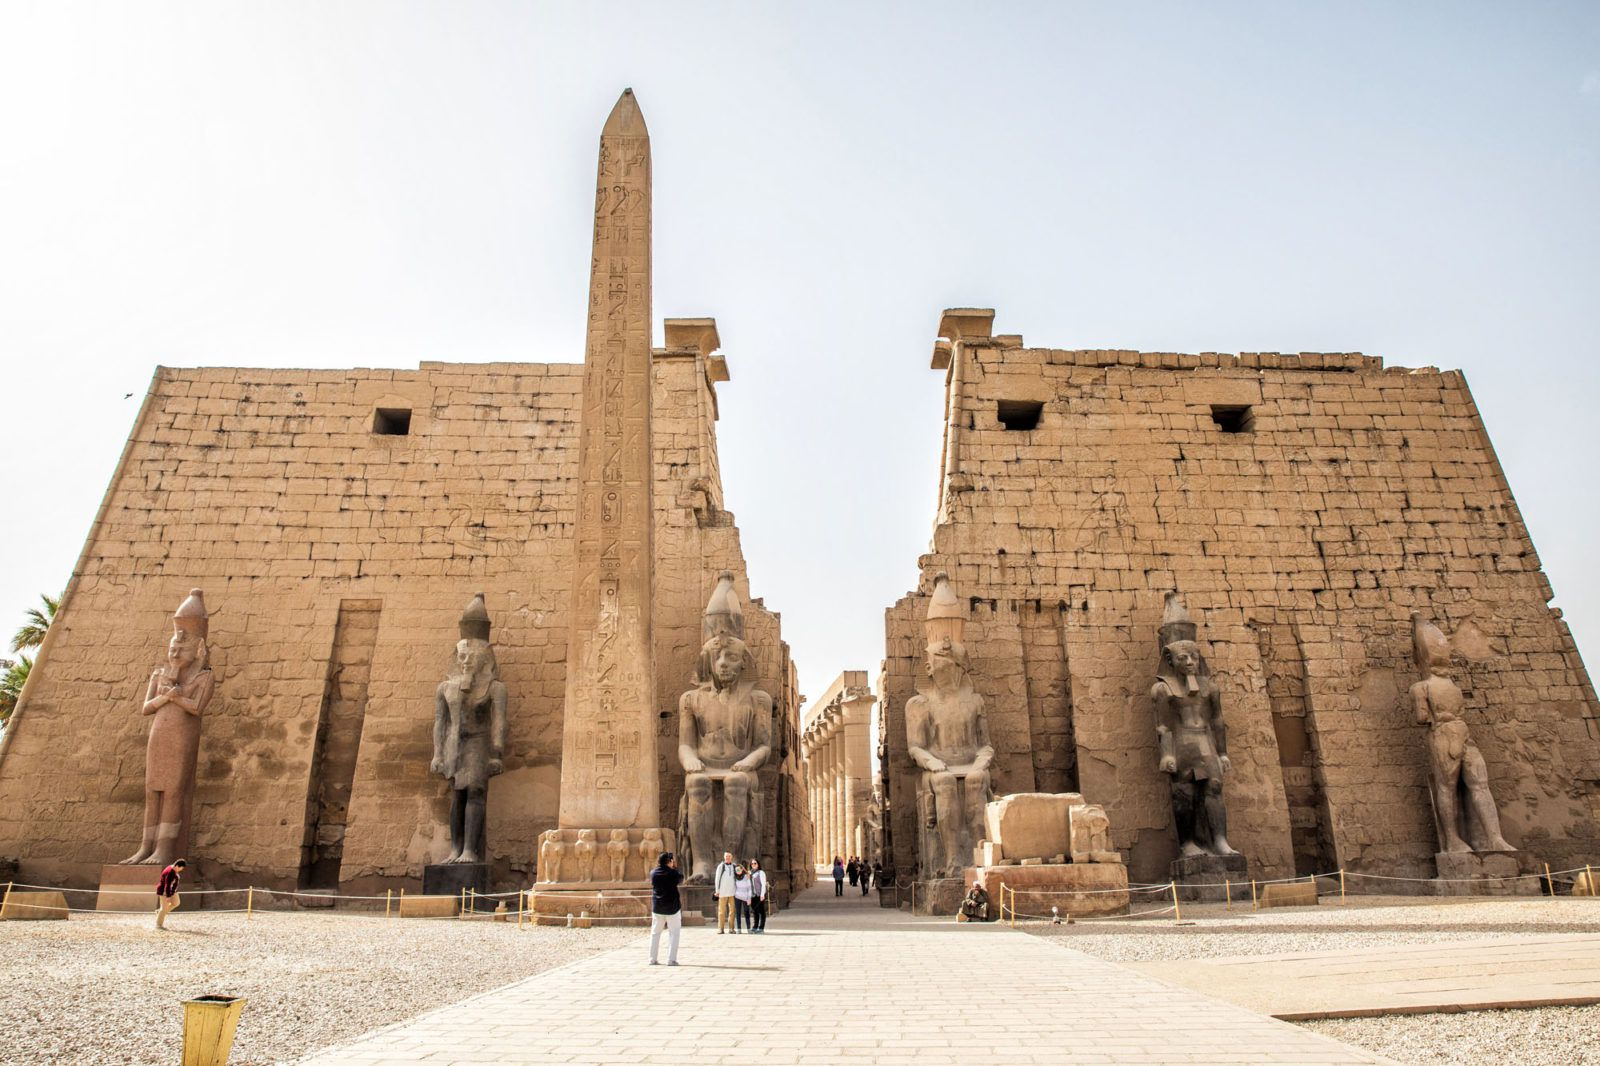 How to Visit East Bank of Luxor